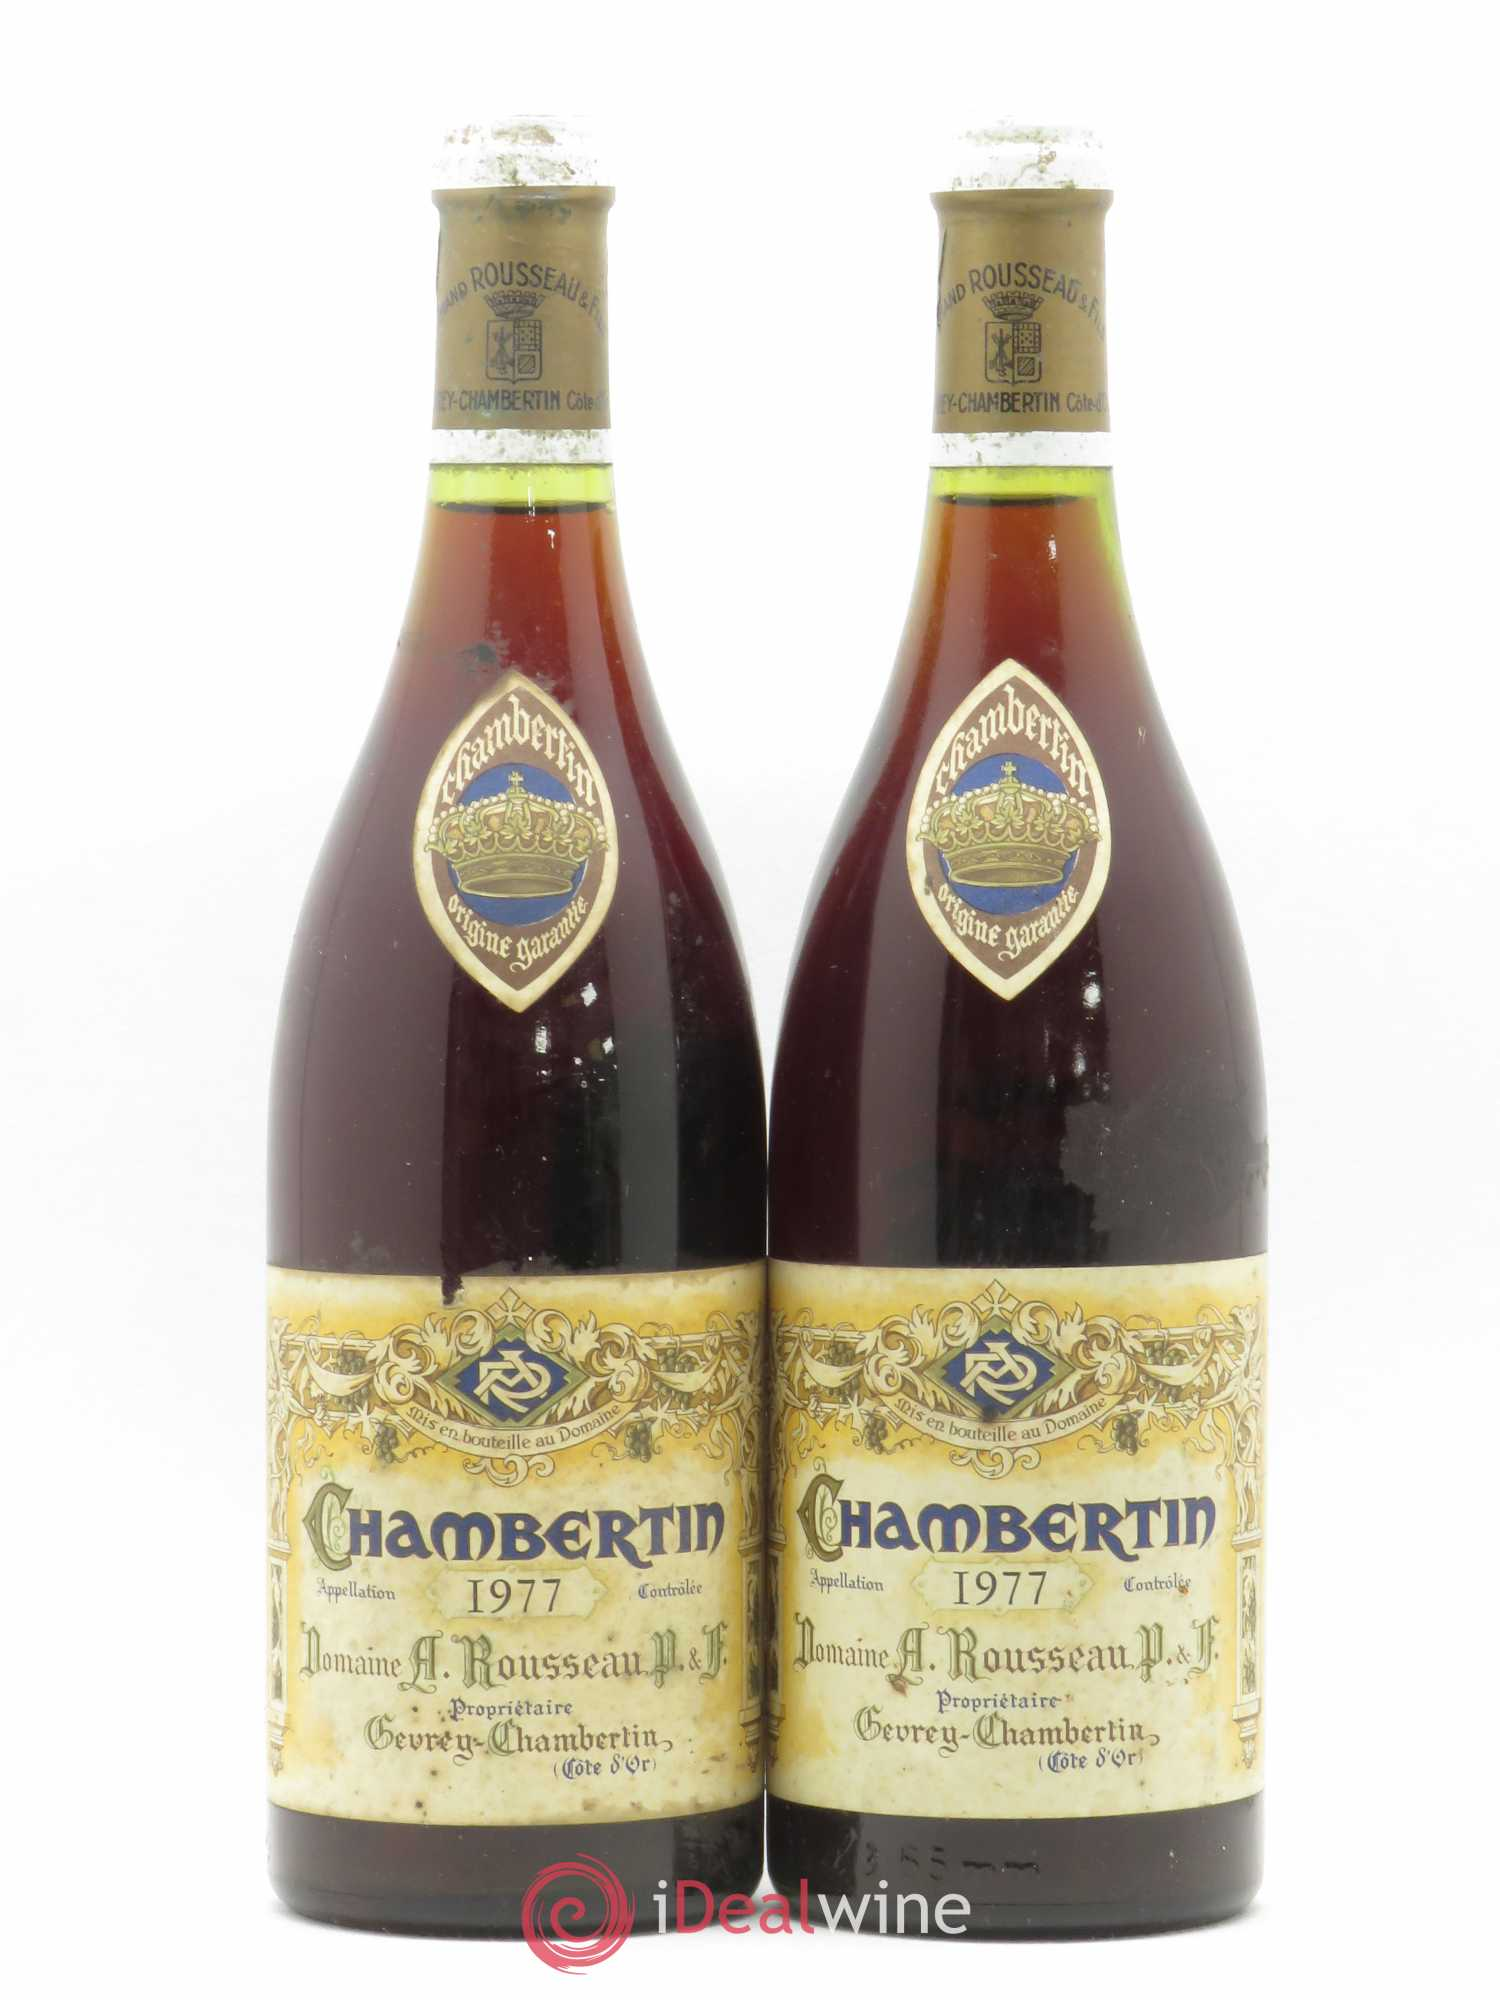 Chambertin Grand Cru Armand Rousseau (Domaine)  1977 - Lot of 2 Bottles